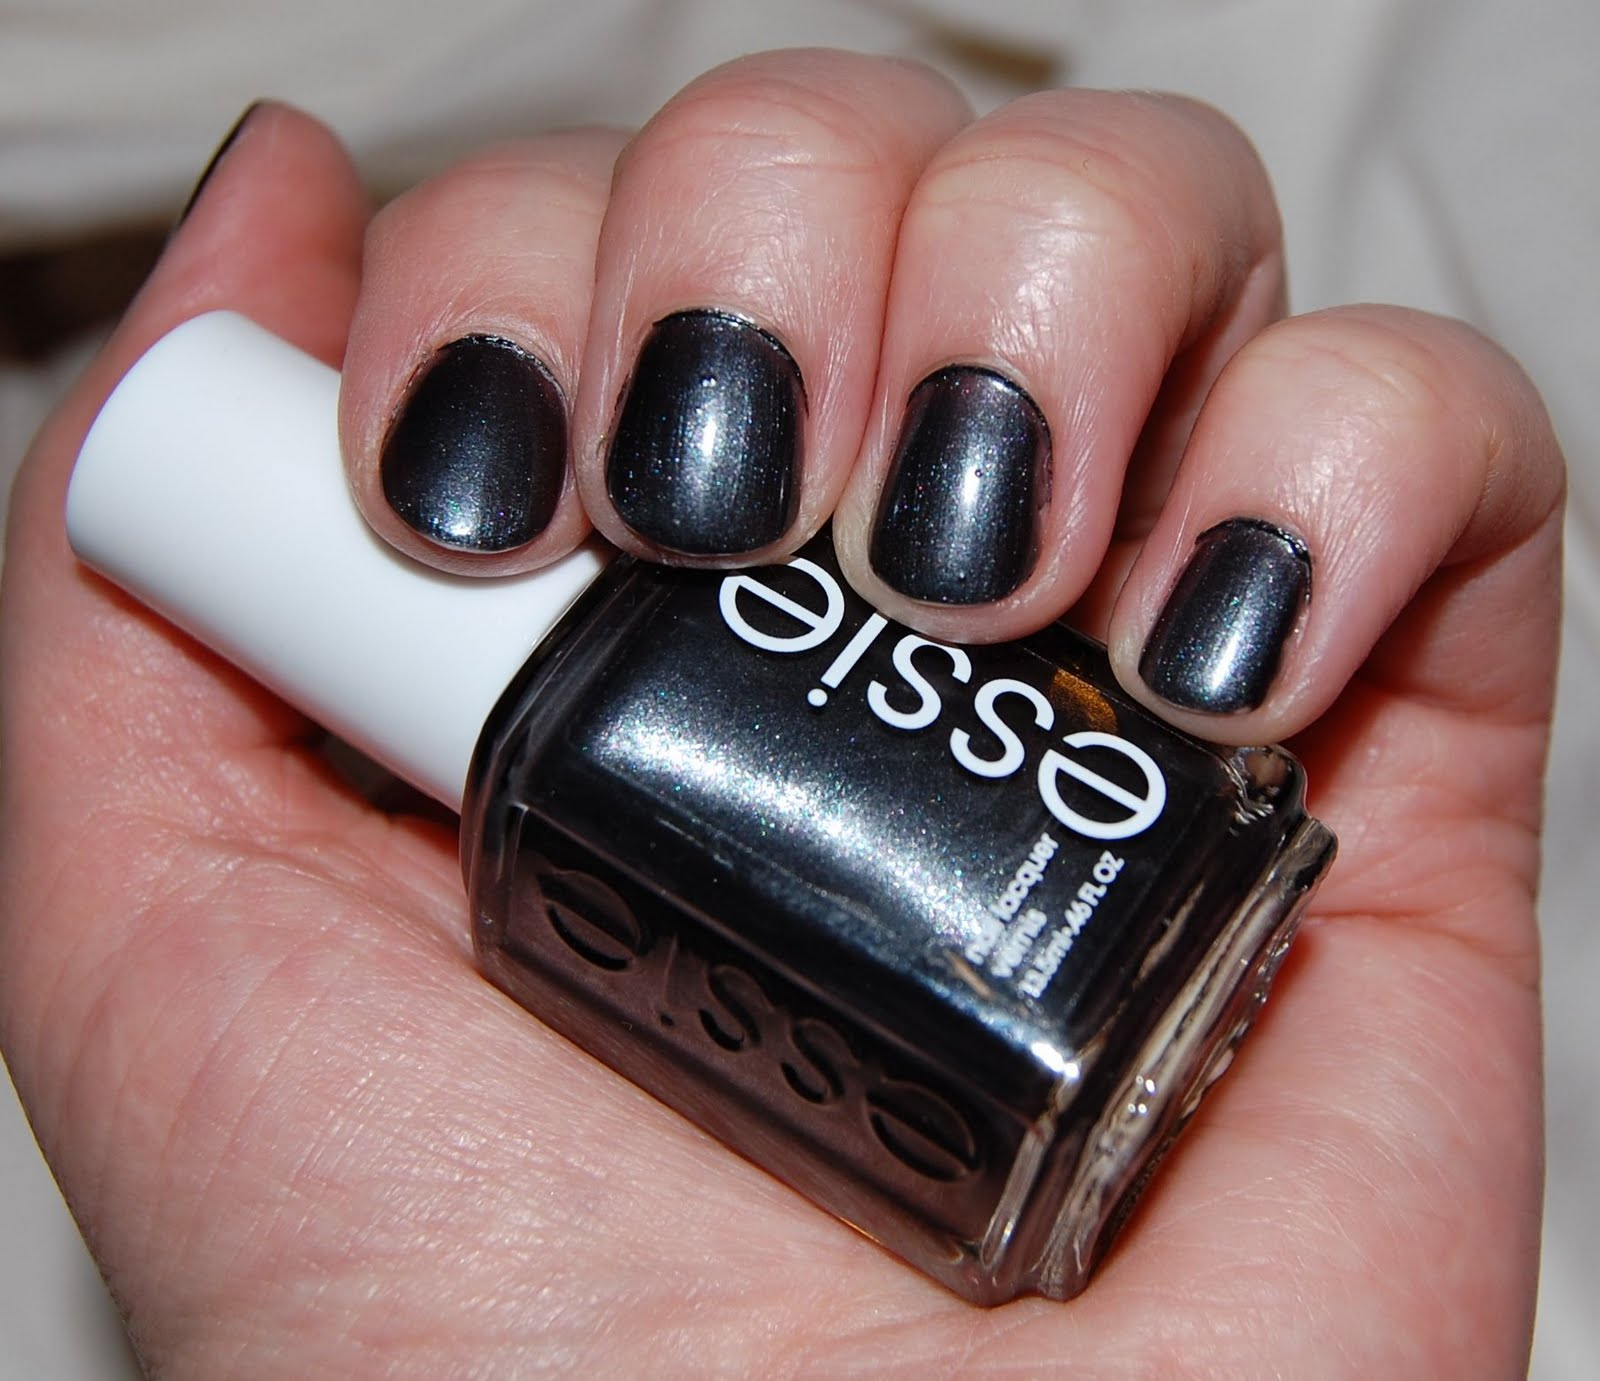 beauty squared: Essie Nailpolish Over the Edge Review and Swatches